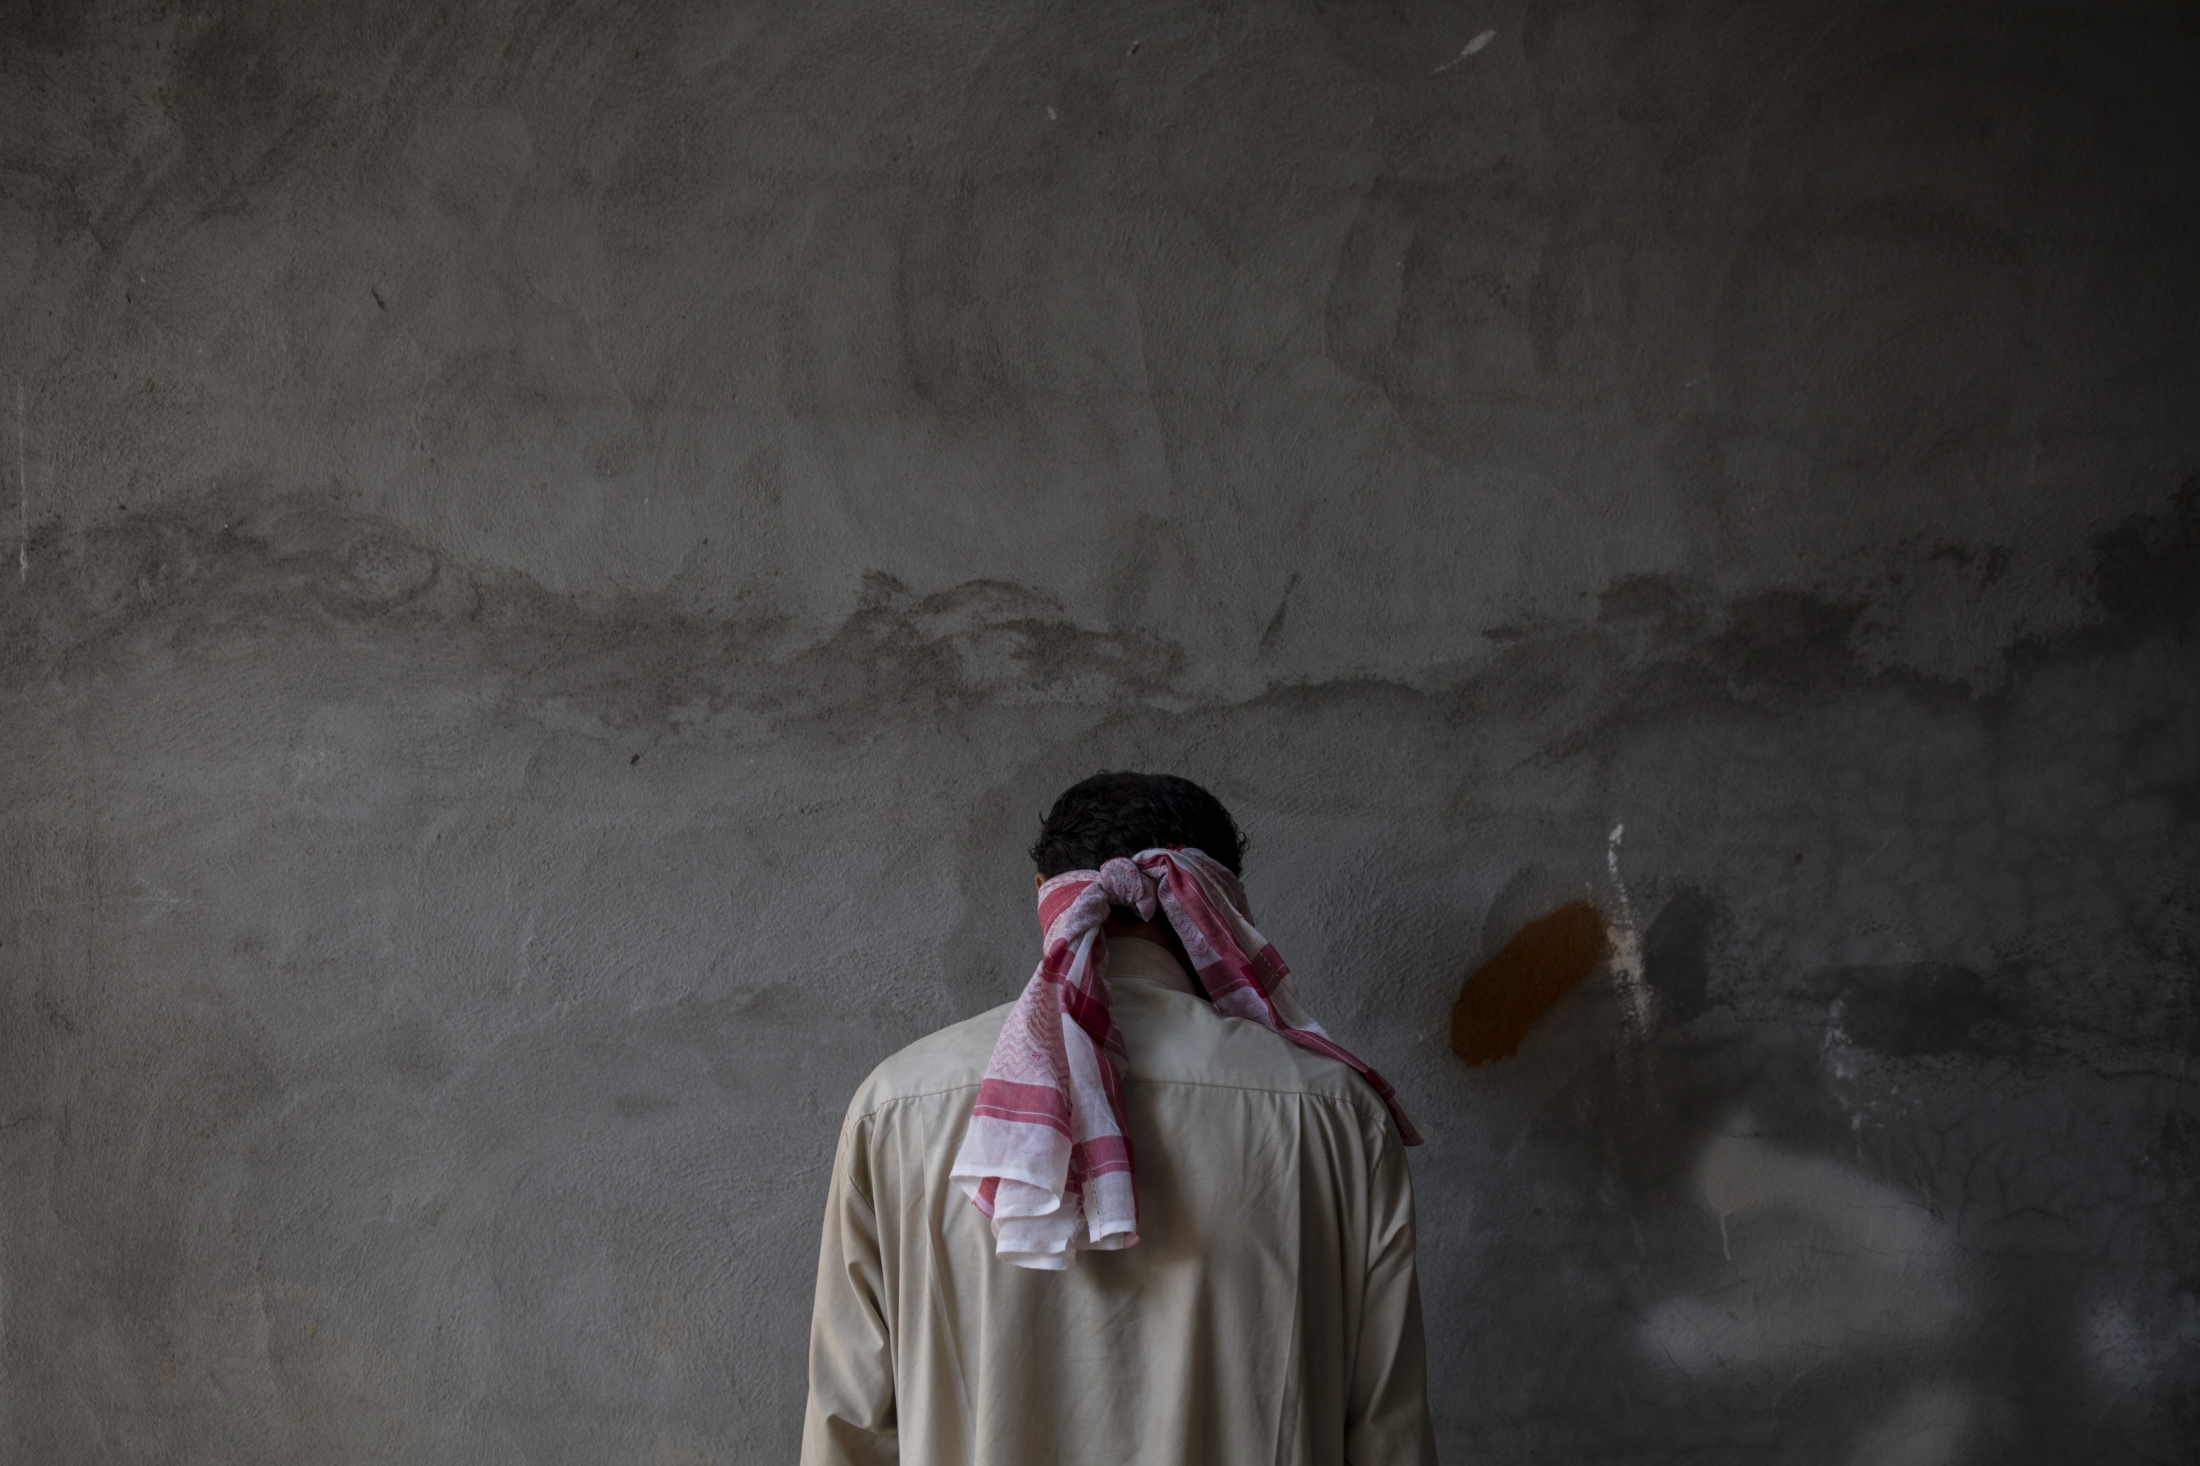 A blindfolded Islamic State suspect stands against a wall at a Kurdish screening center in Dibis, Tuesday, Oct. 3, 2017. Displaced people from Hawija are brought to the center where men are being separated from the women and children and are investigated for involvement in the Islamic State group.